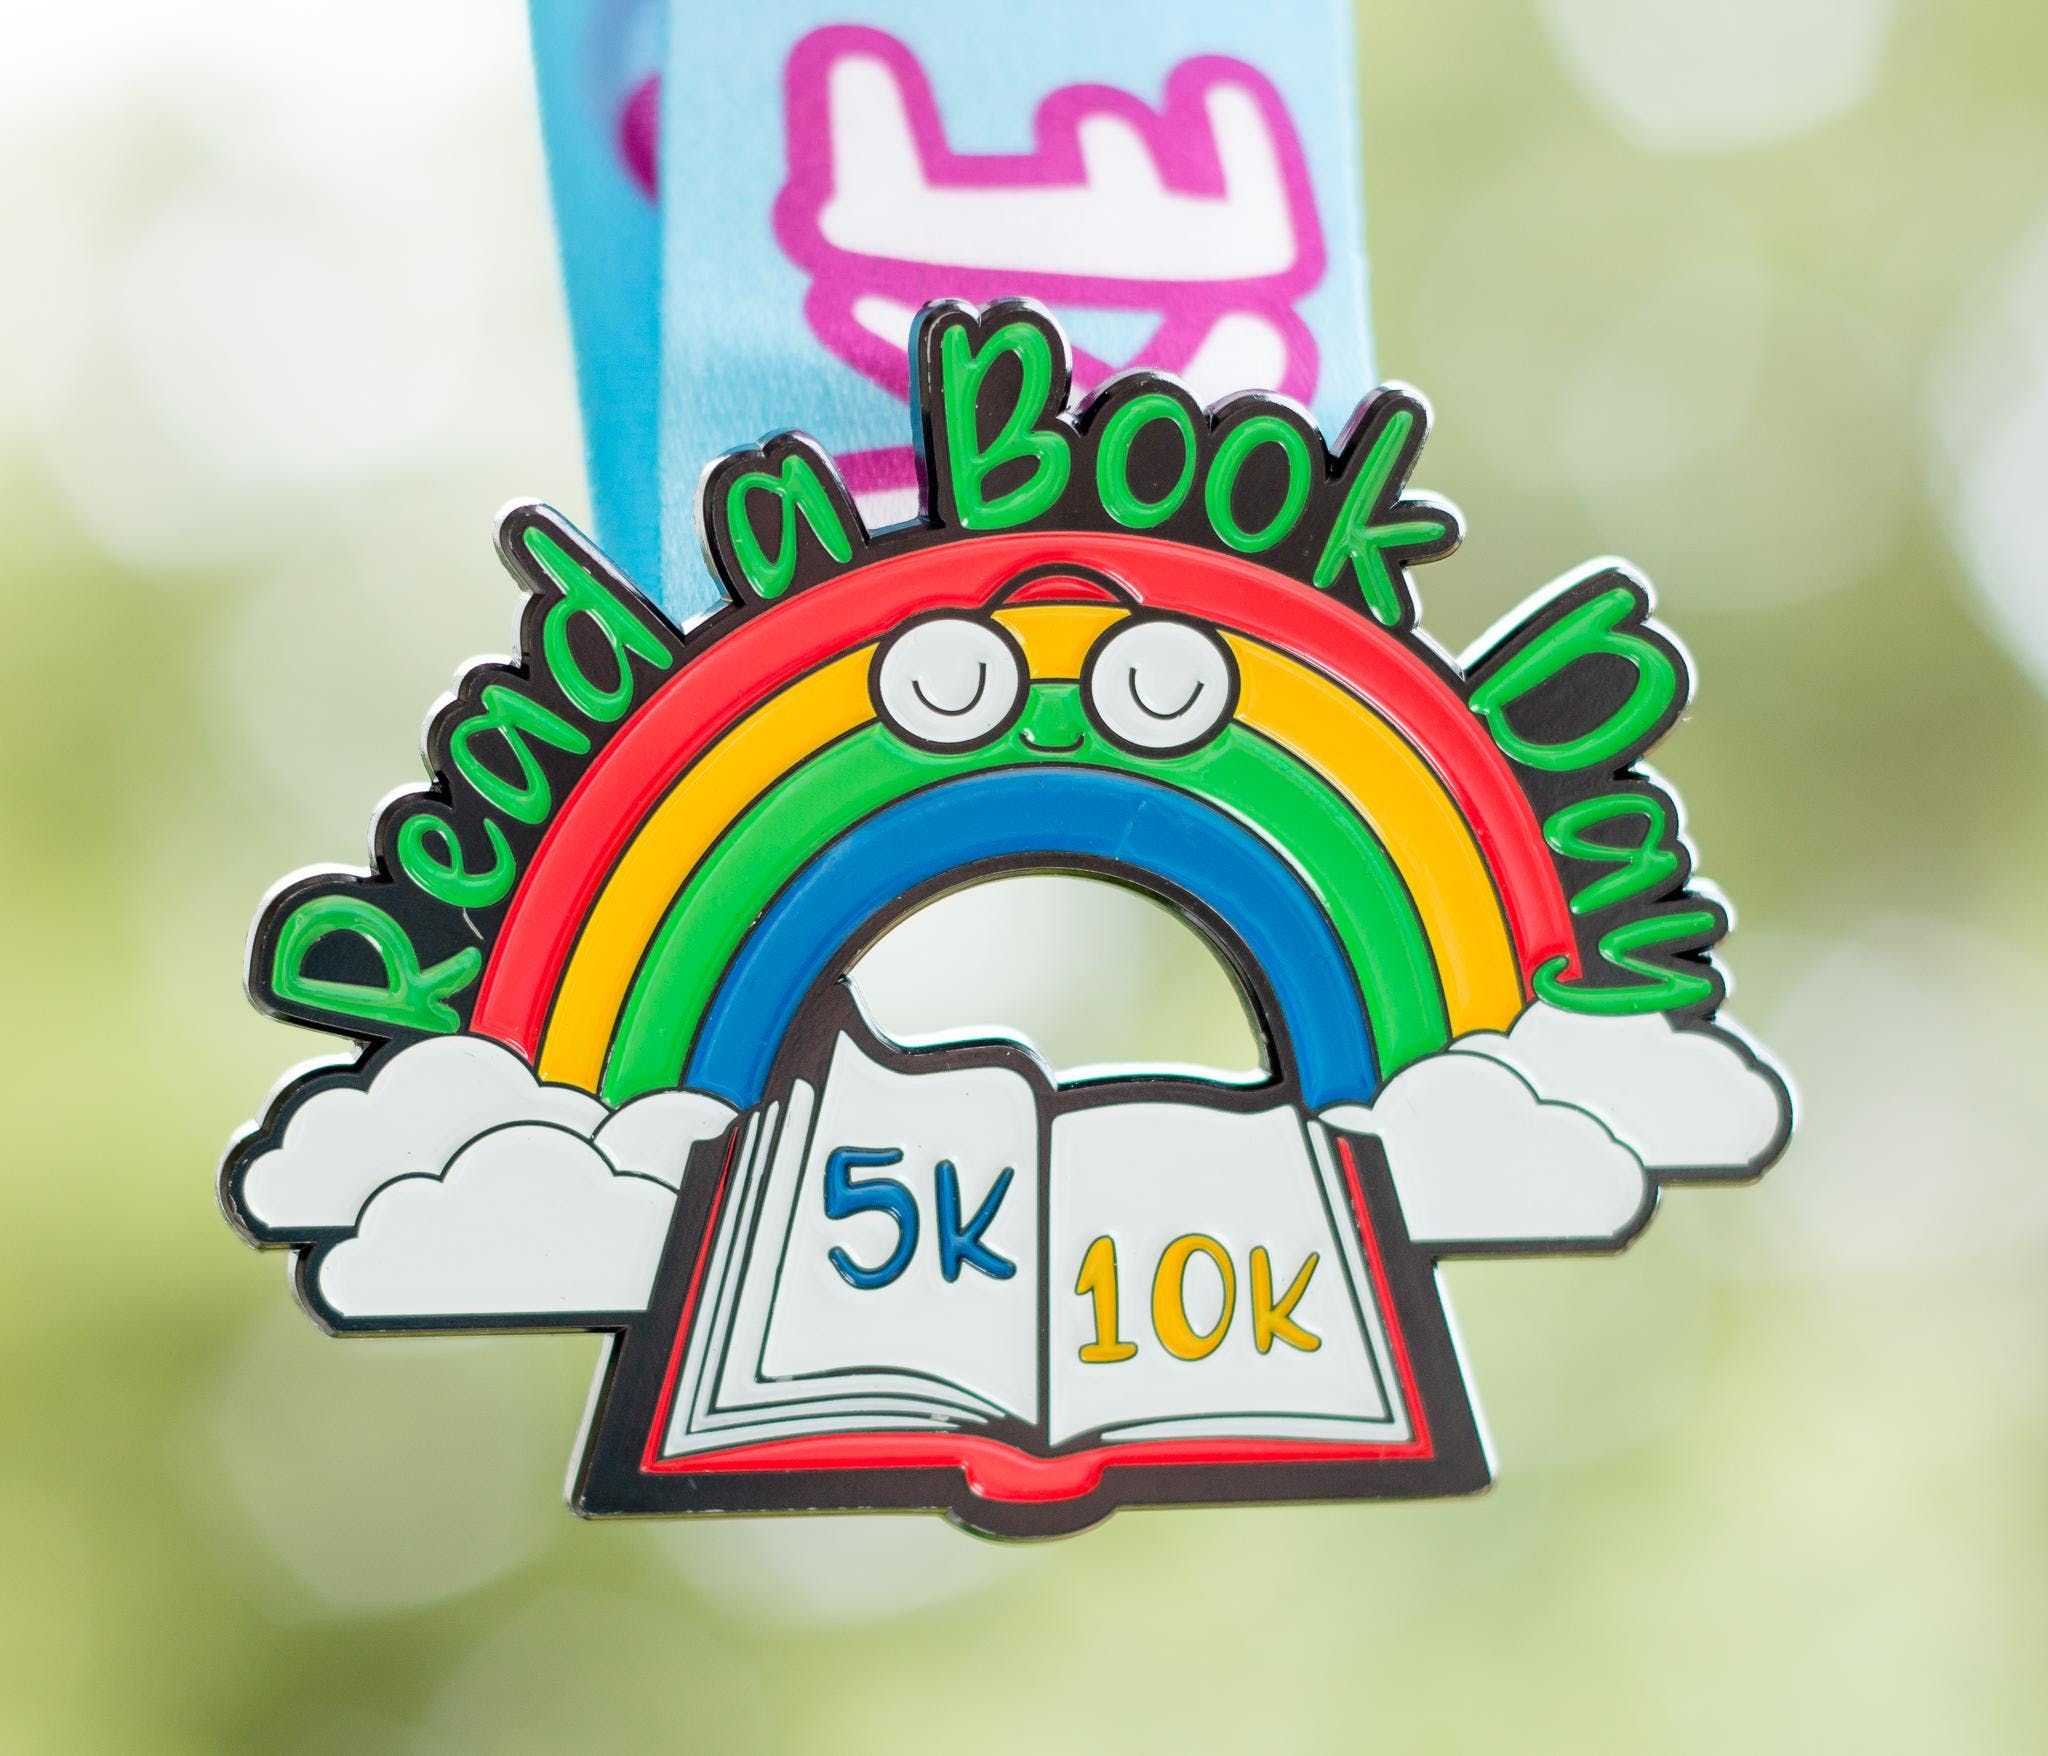 Now Only 10 Read a Book Day 5K & 10K - Take a Look Its in a Book - Albany